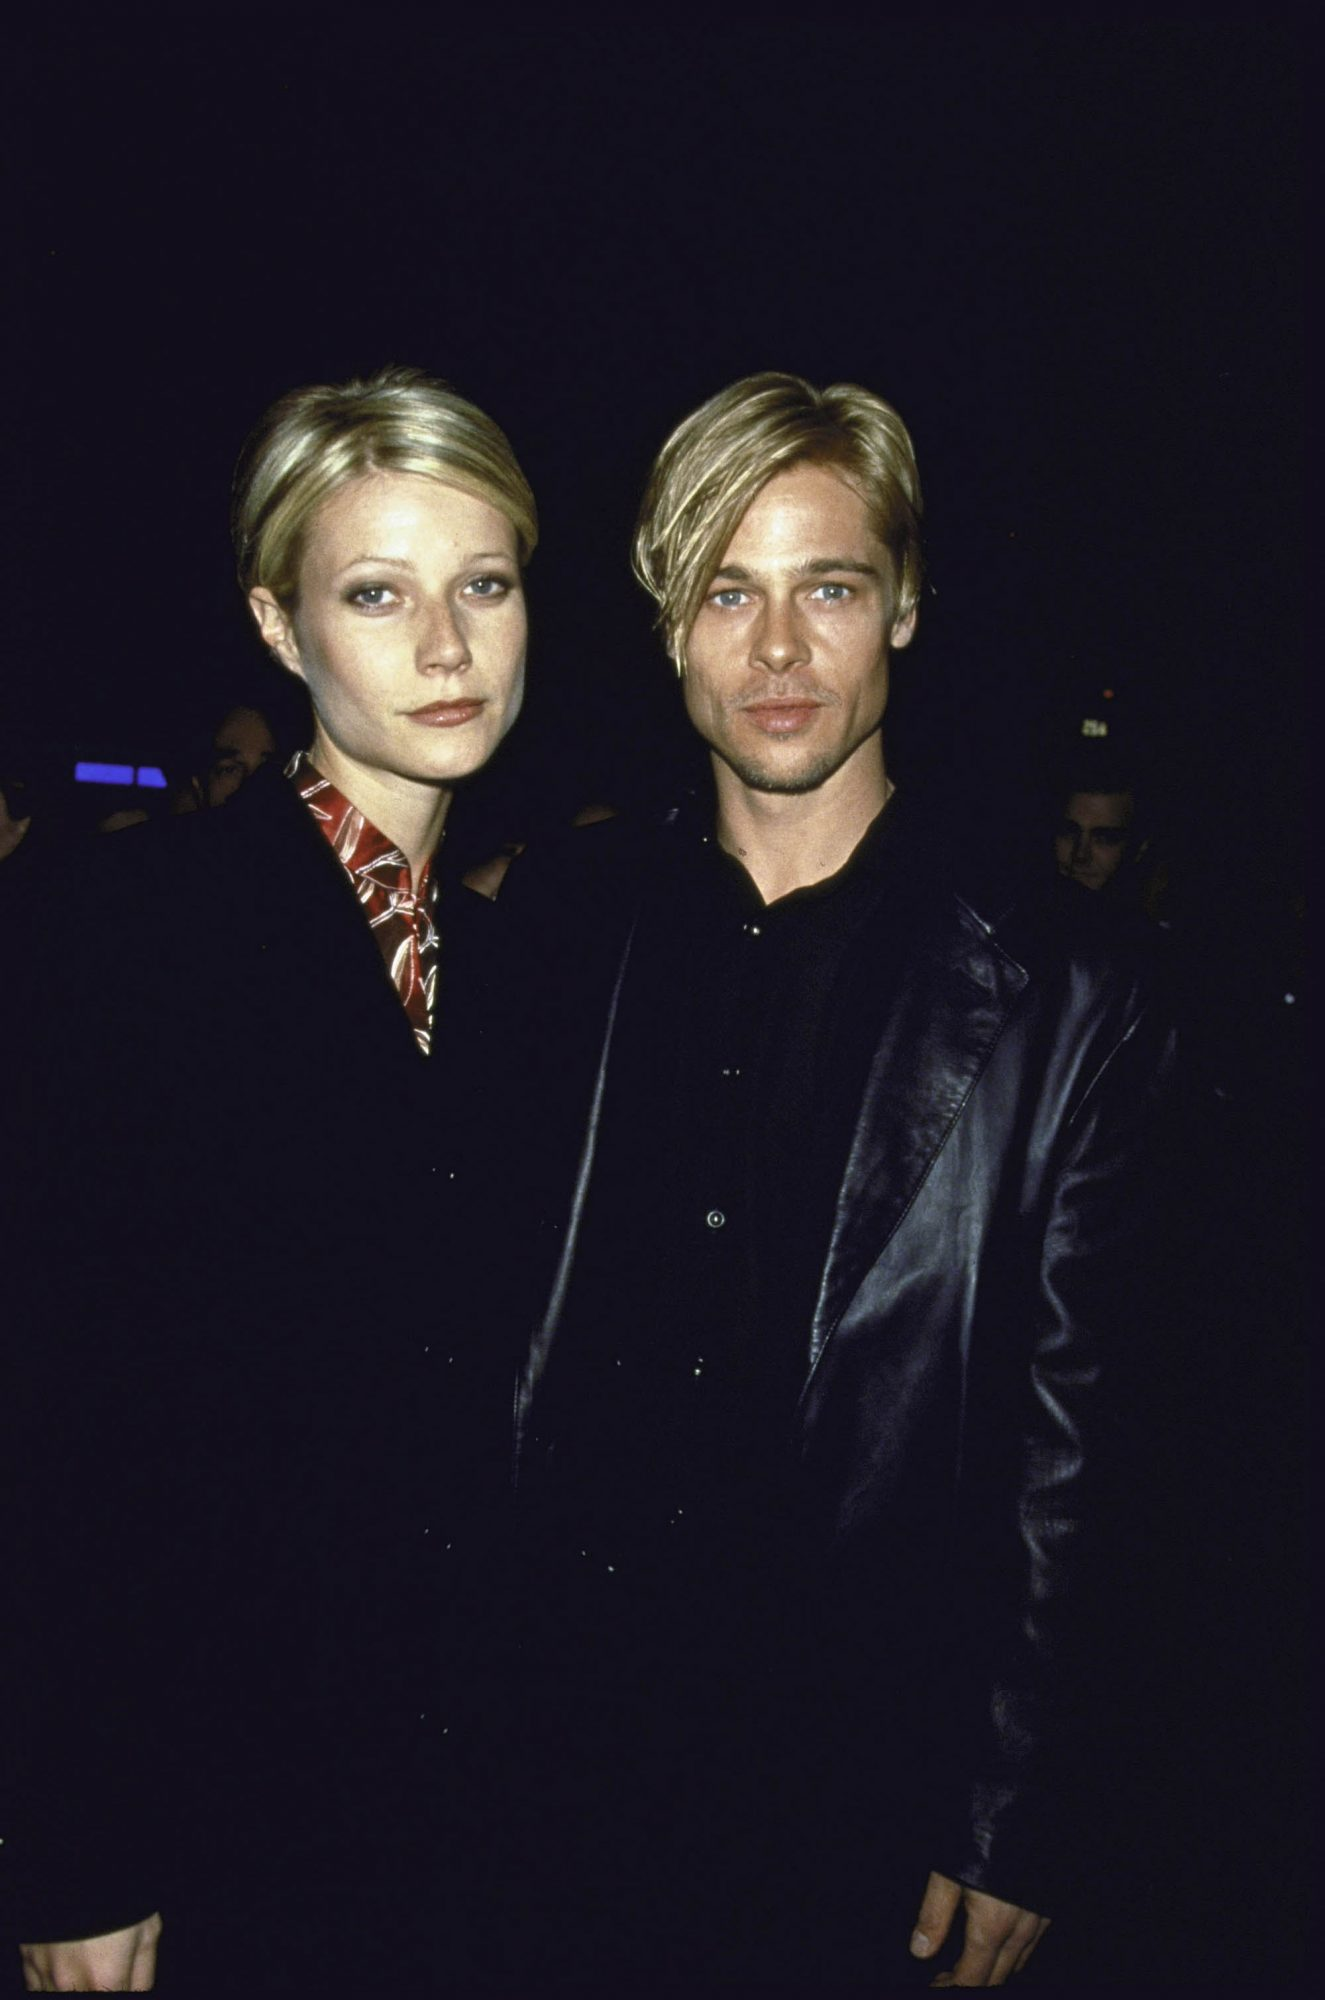 Gwyneth Paltrow Is Happy She and Brad Pitt Broke Up in 1997 and Not 2018